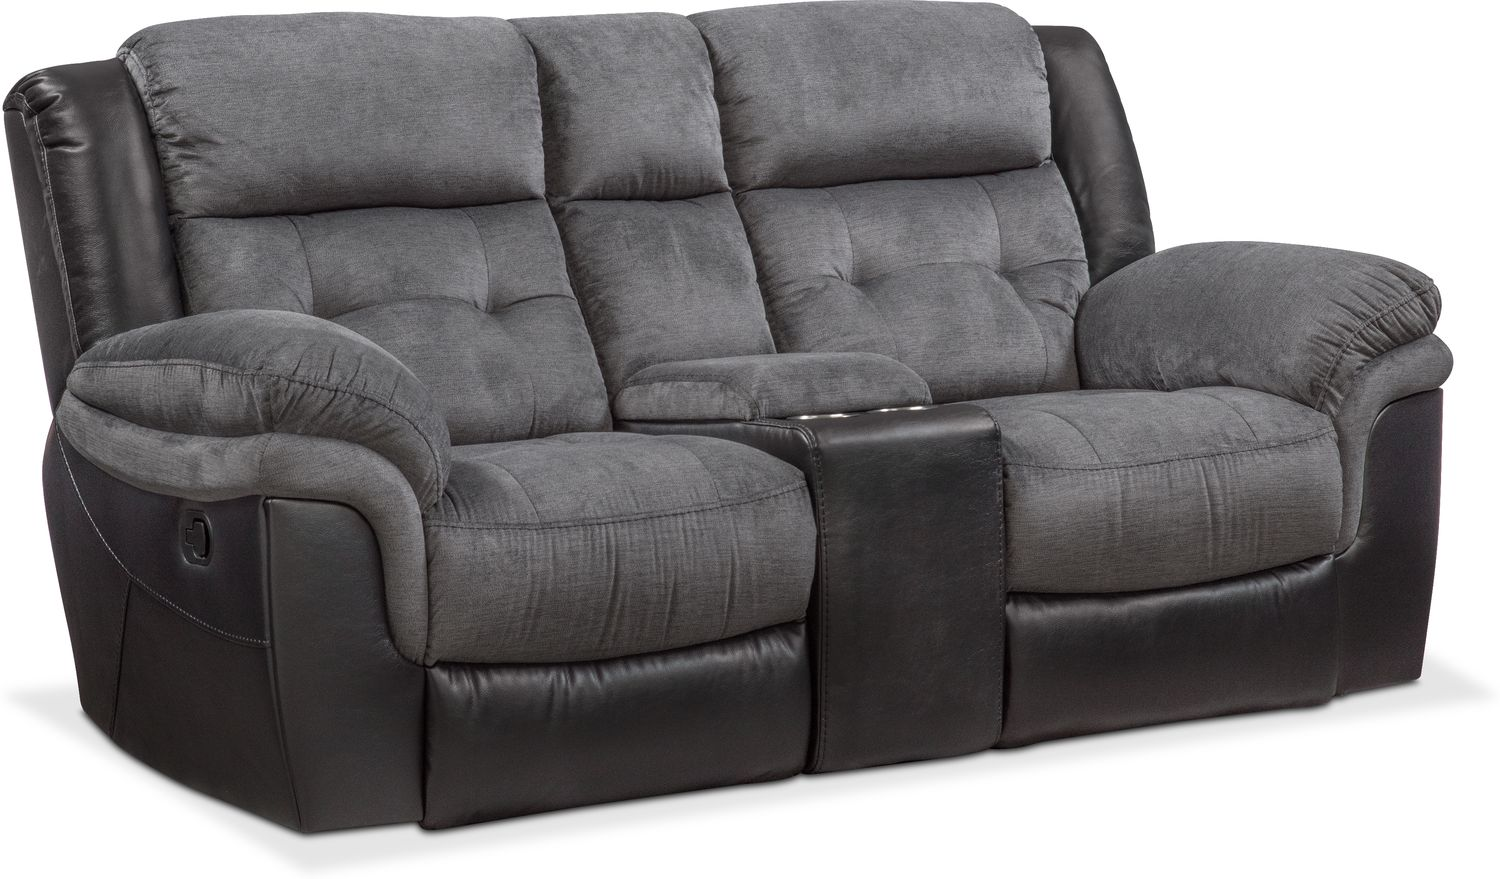 Black Leather Recliner Loveseat Top Large Levelland Power